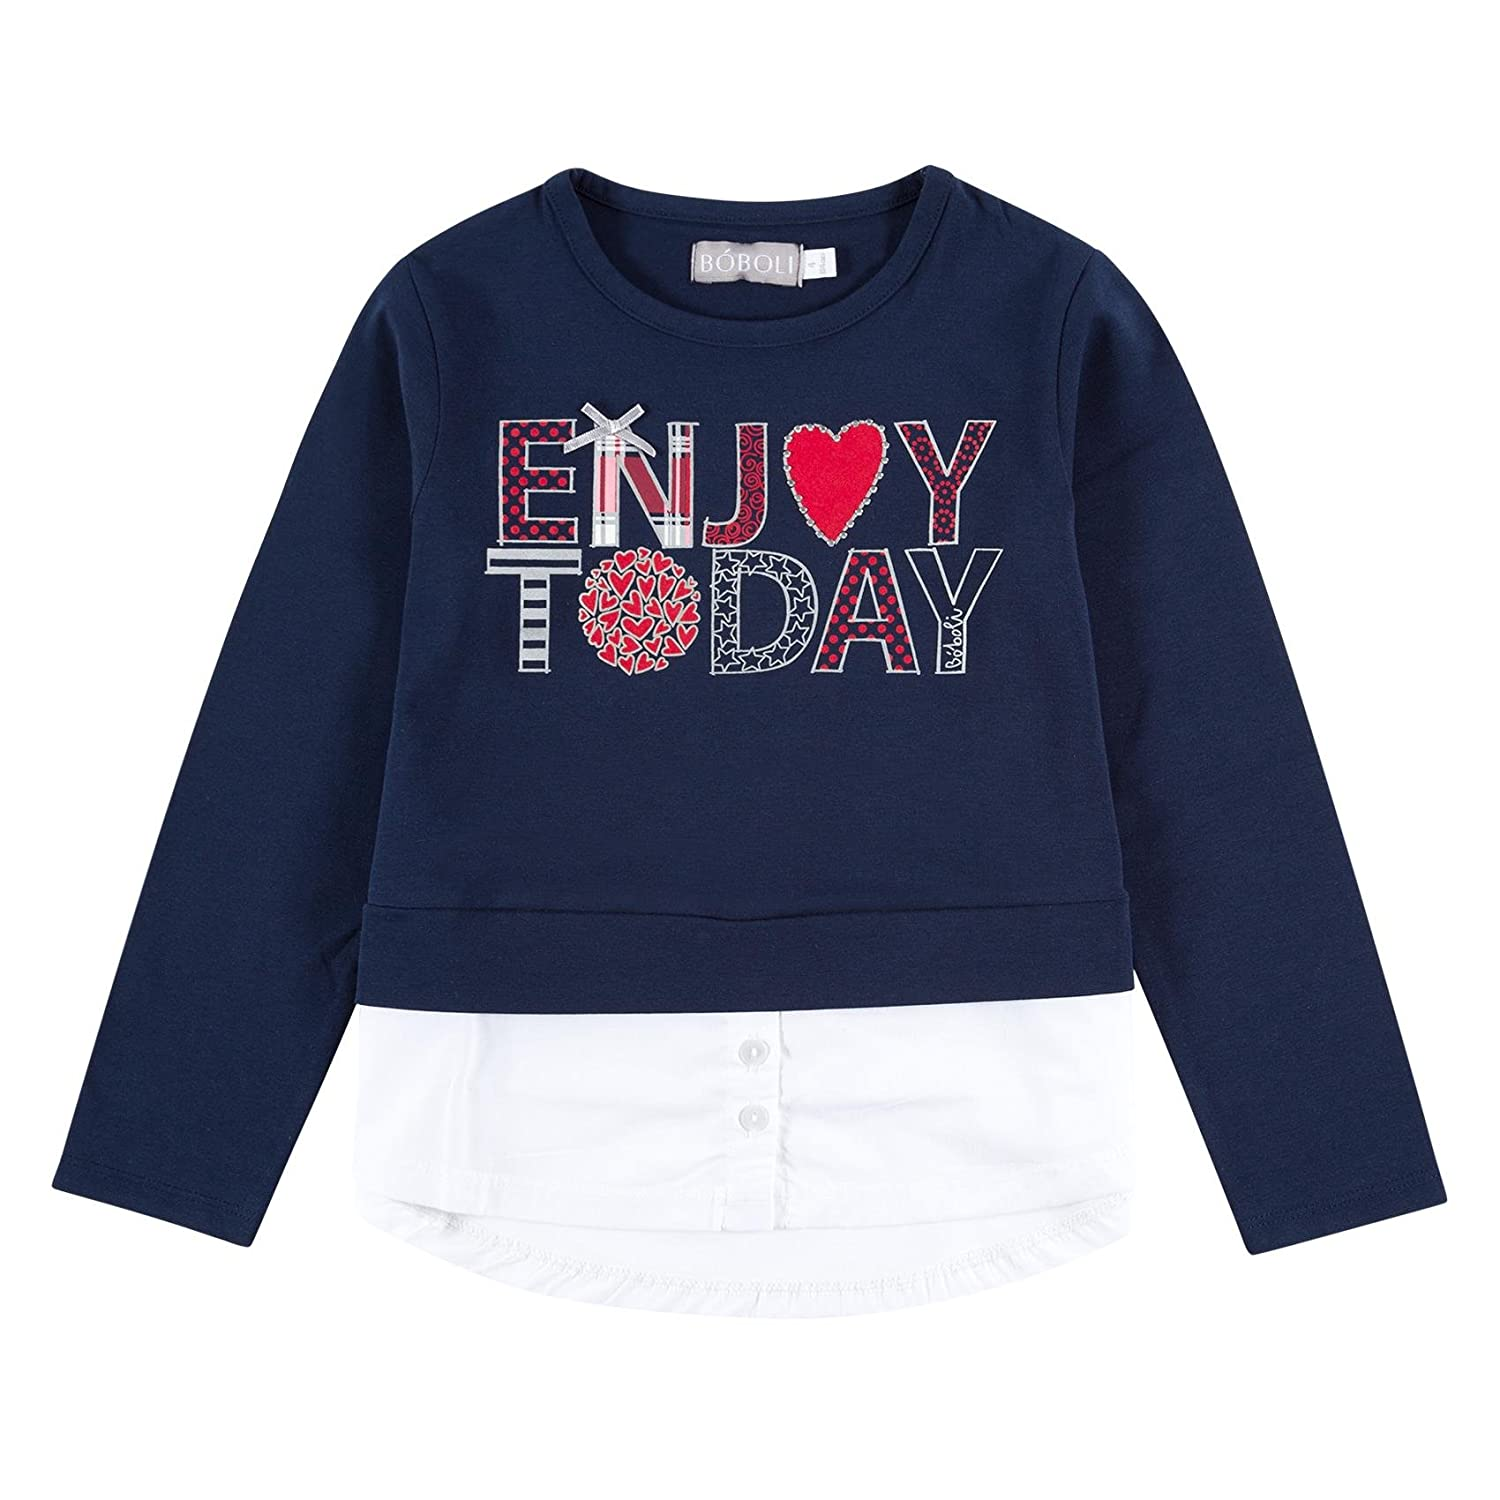 boboli Stretch Knit for Girl, T-Shirt Bambina Blu (Navy) 432032-2440